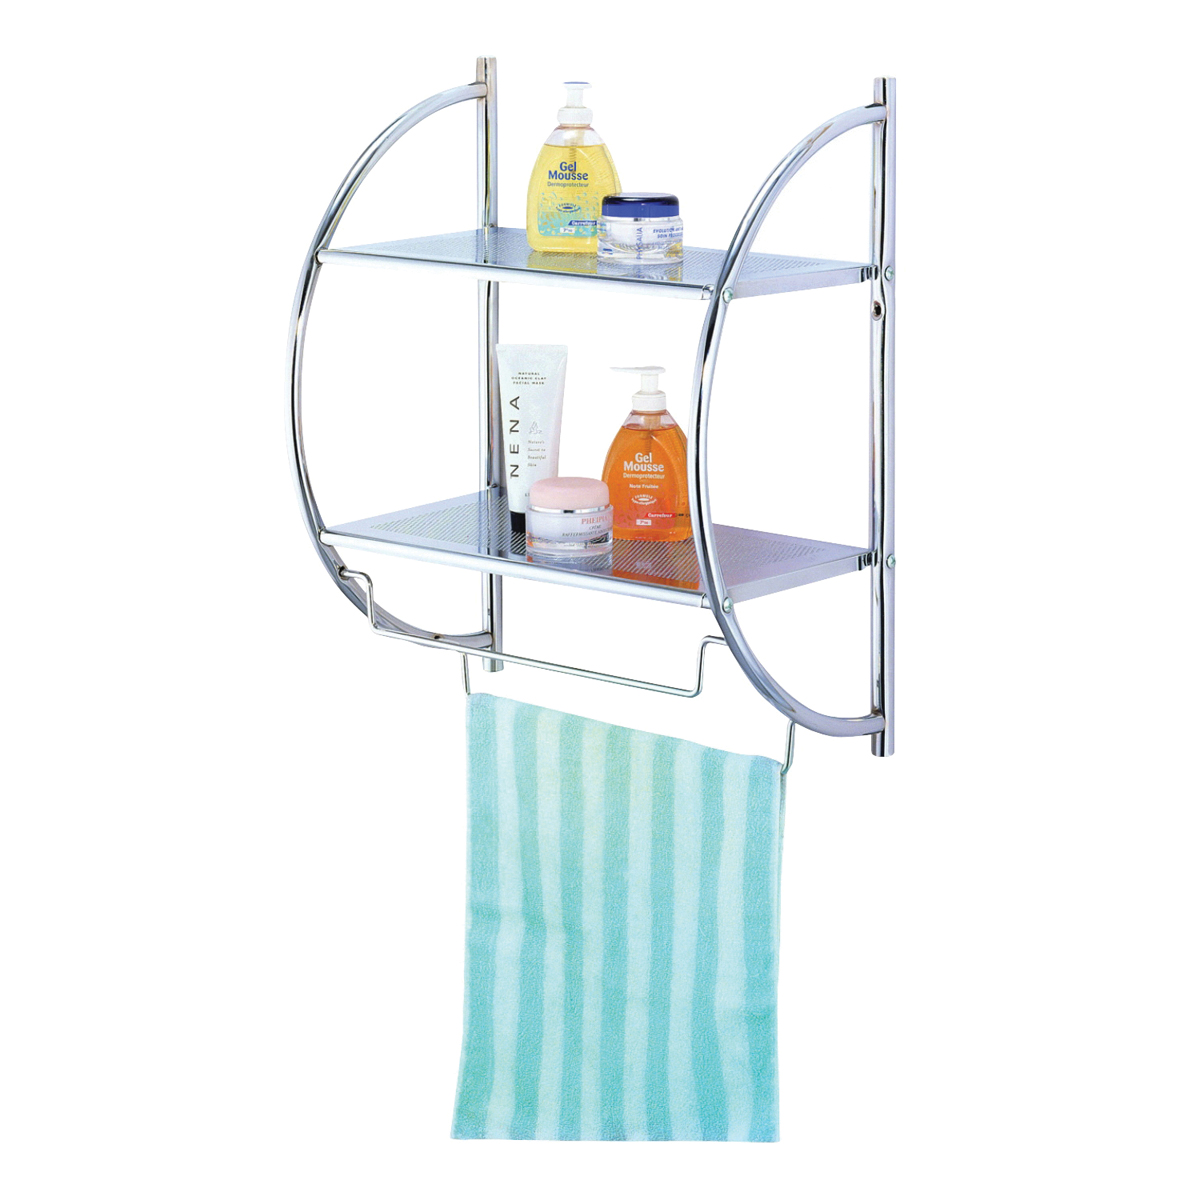 Picture of Simple Spaces Y19-CH Wall Rack, Each shelf 8.8, Each towel rack 8.8 lb Max Weight Capacity, Metal, Polished Chrome